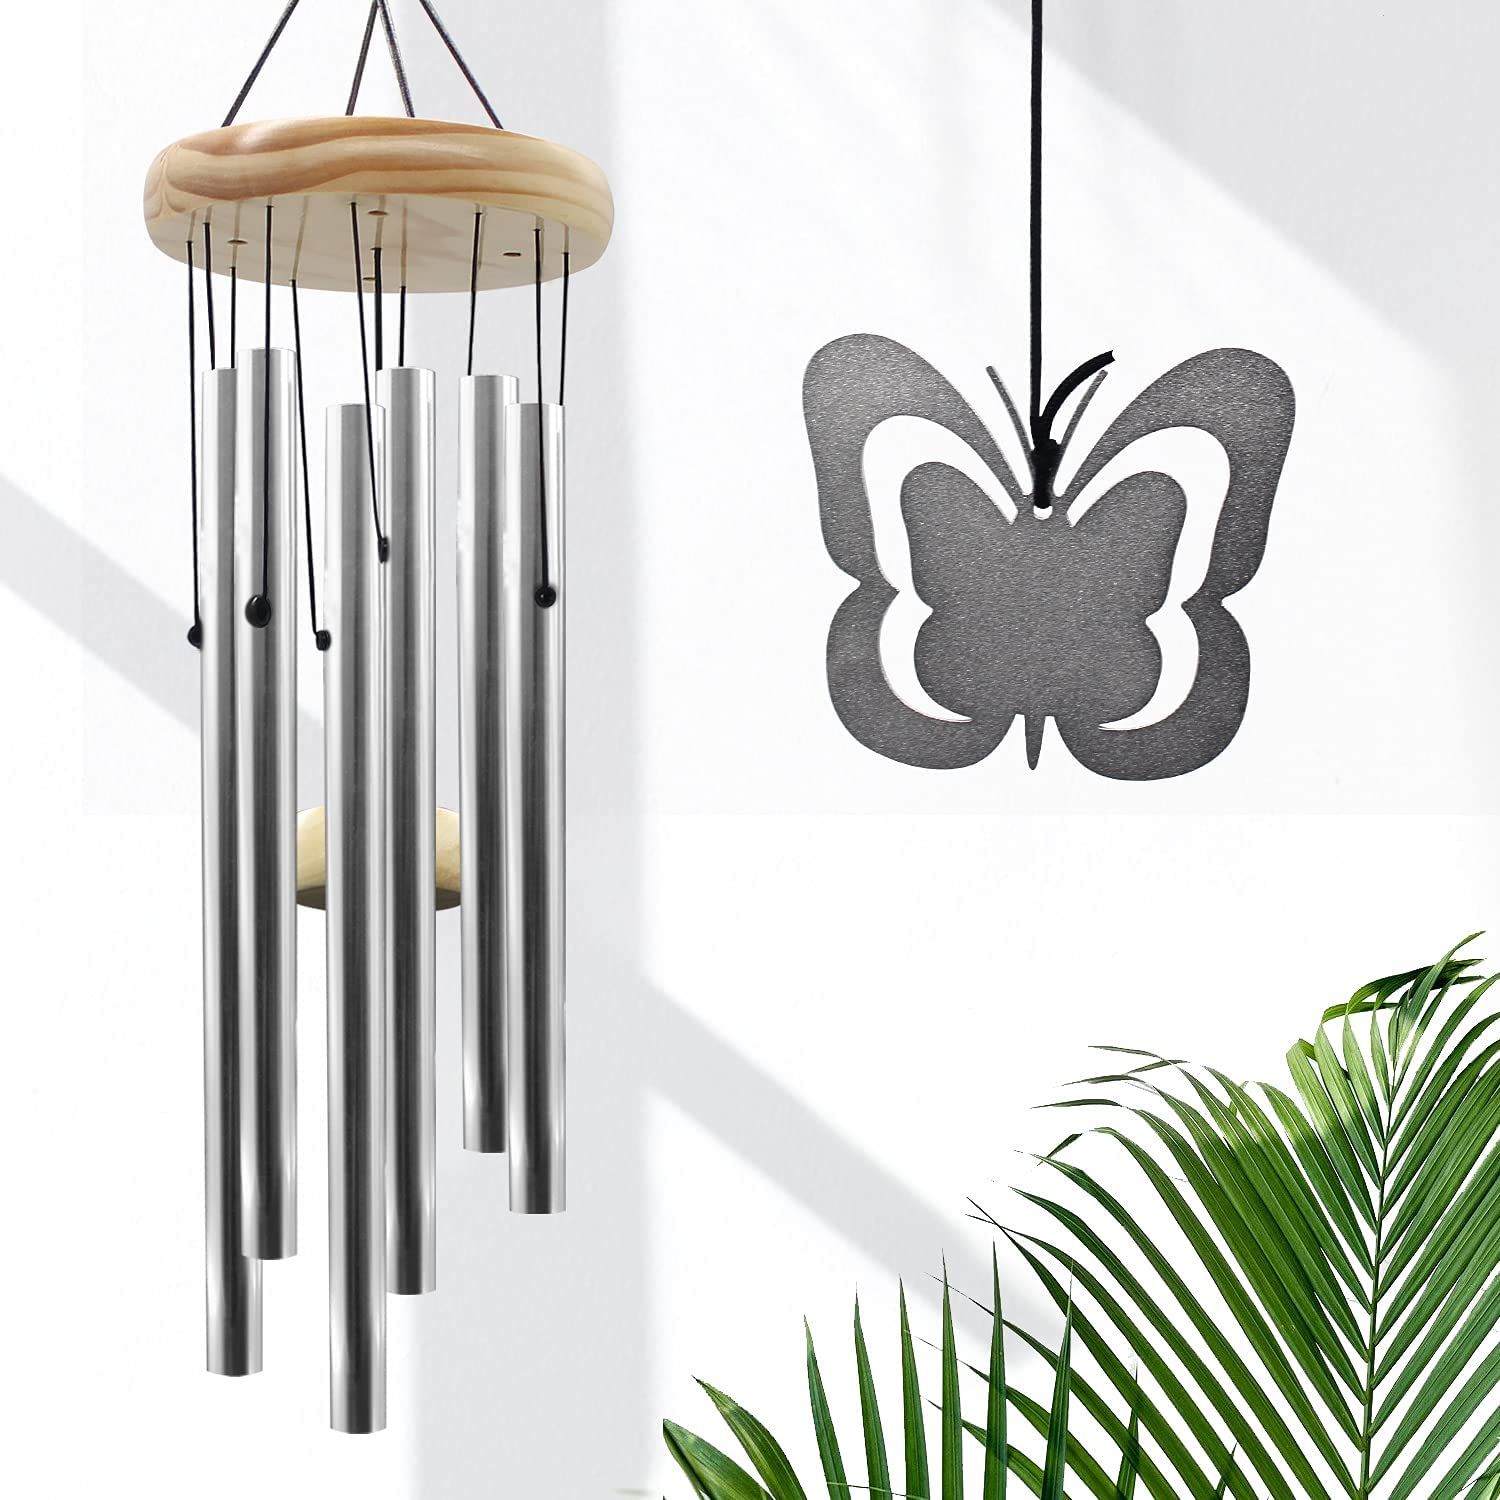 LUOLAI Wind Chimes Outdoor Clearance, 30'' Butterfly Wind Chimes for Outside with 6 Tubes Tuned Soothing Music, Great as Memorial Sympathy Wind Chimes Gifts for Home Garden Patio Backyard Decor